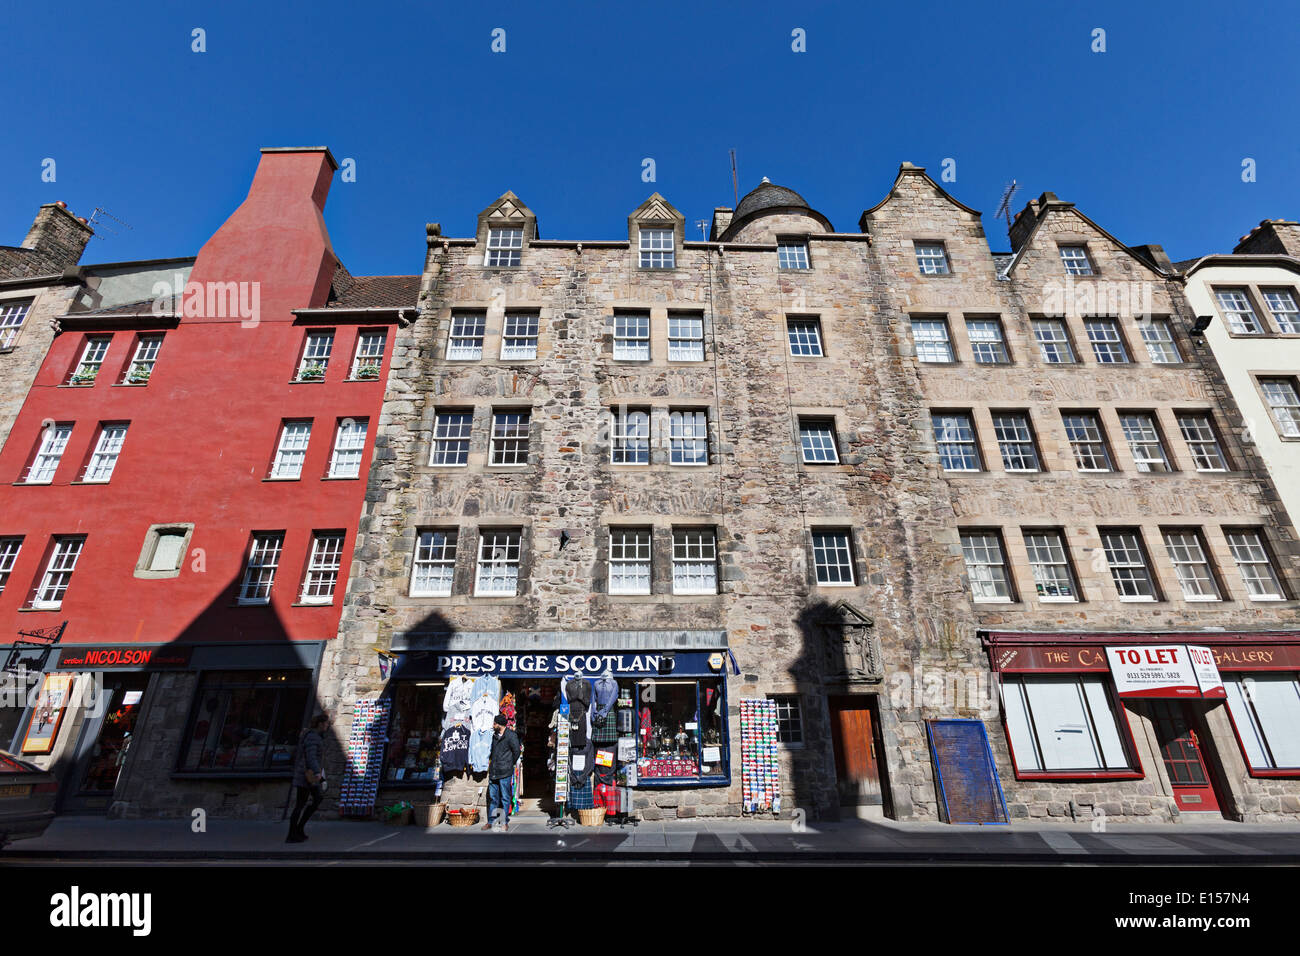 Traditional architecture and a Scottish souvenir gift shop on the Royal Mile, Edinburgh - Stock Image